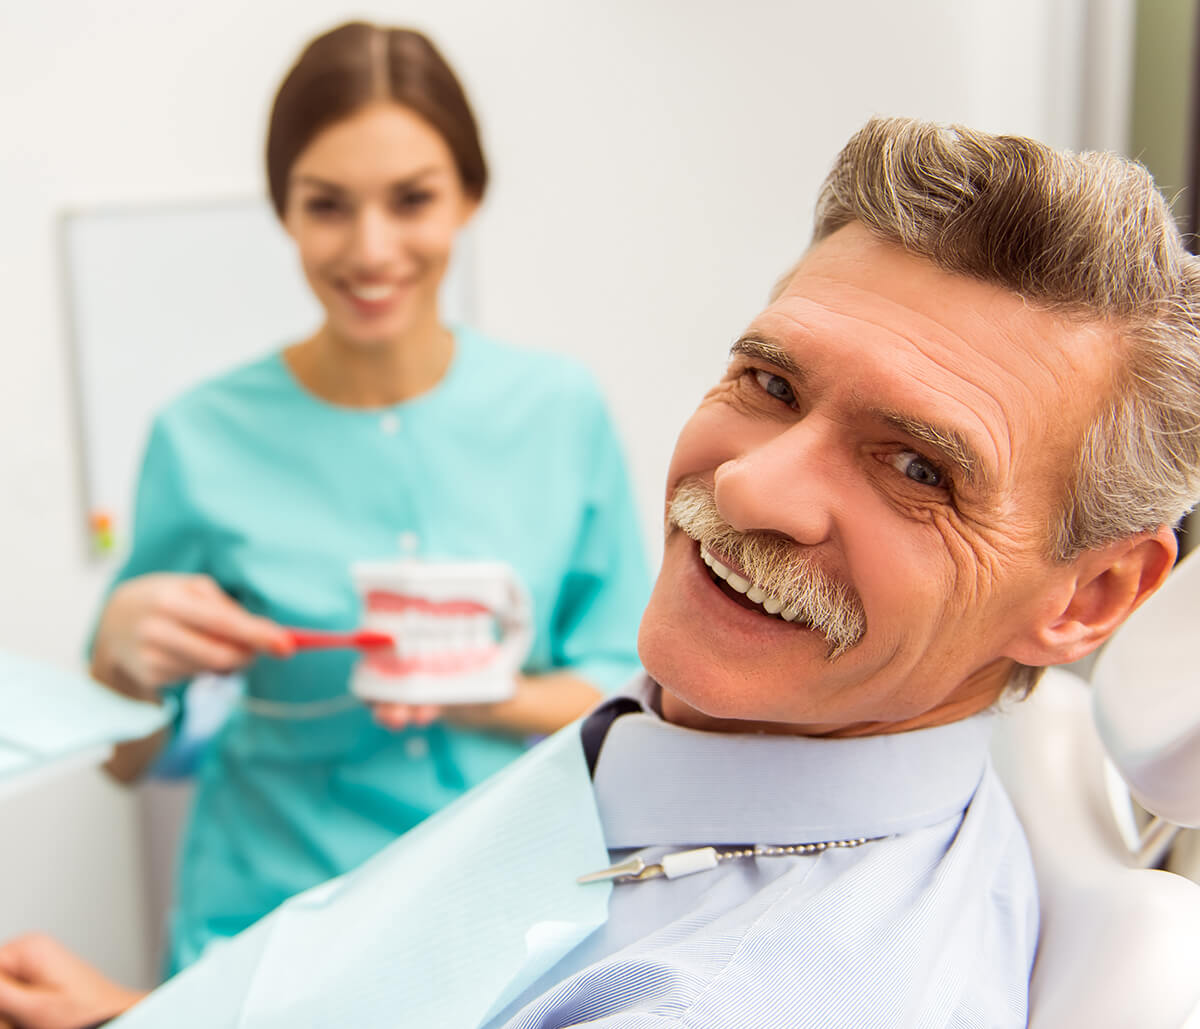 Get Quality Dentures at Clint Bruyere DDS in Longview Texas Area